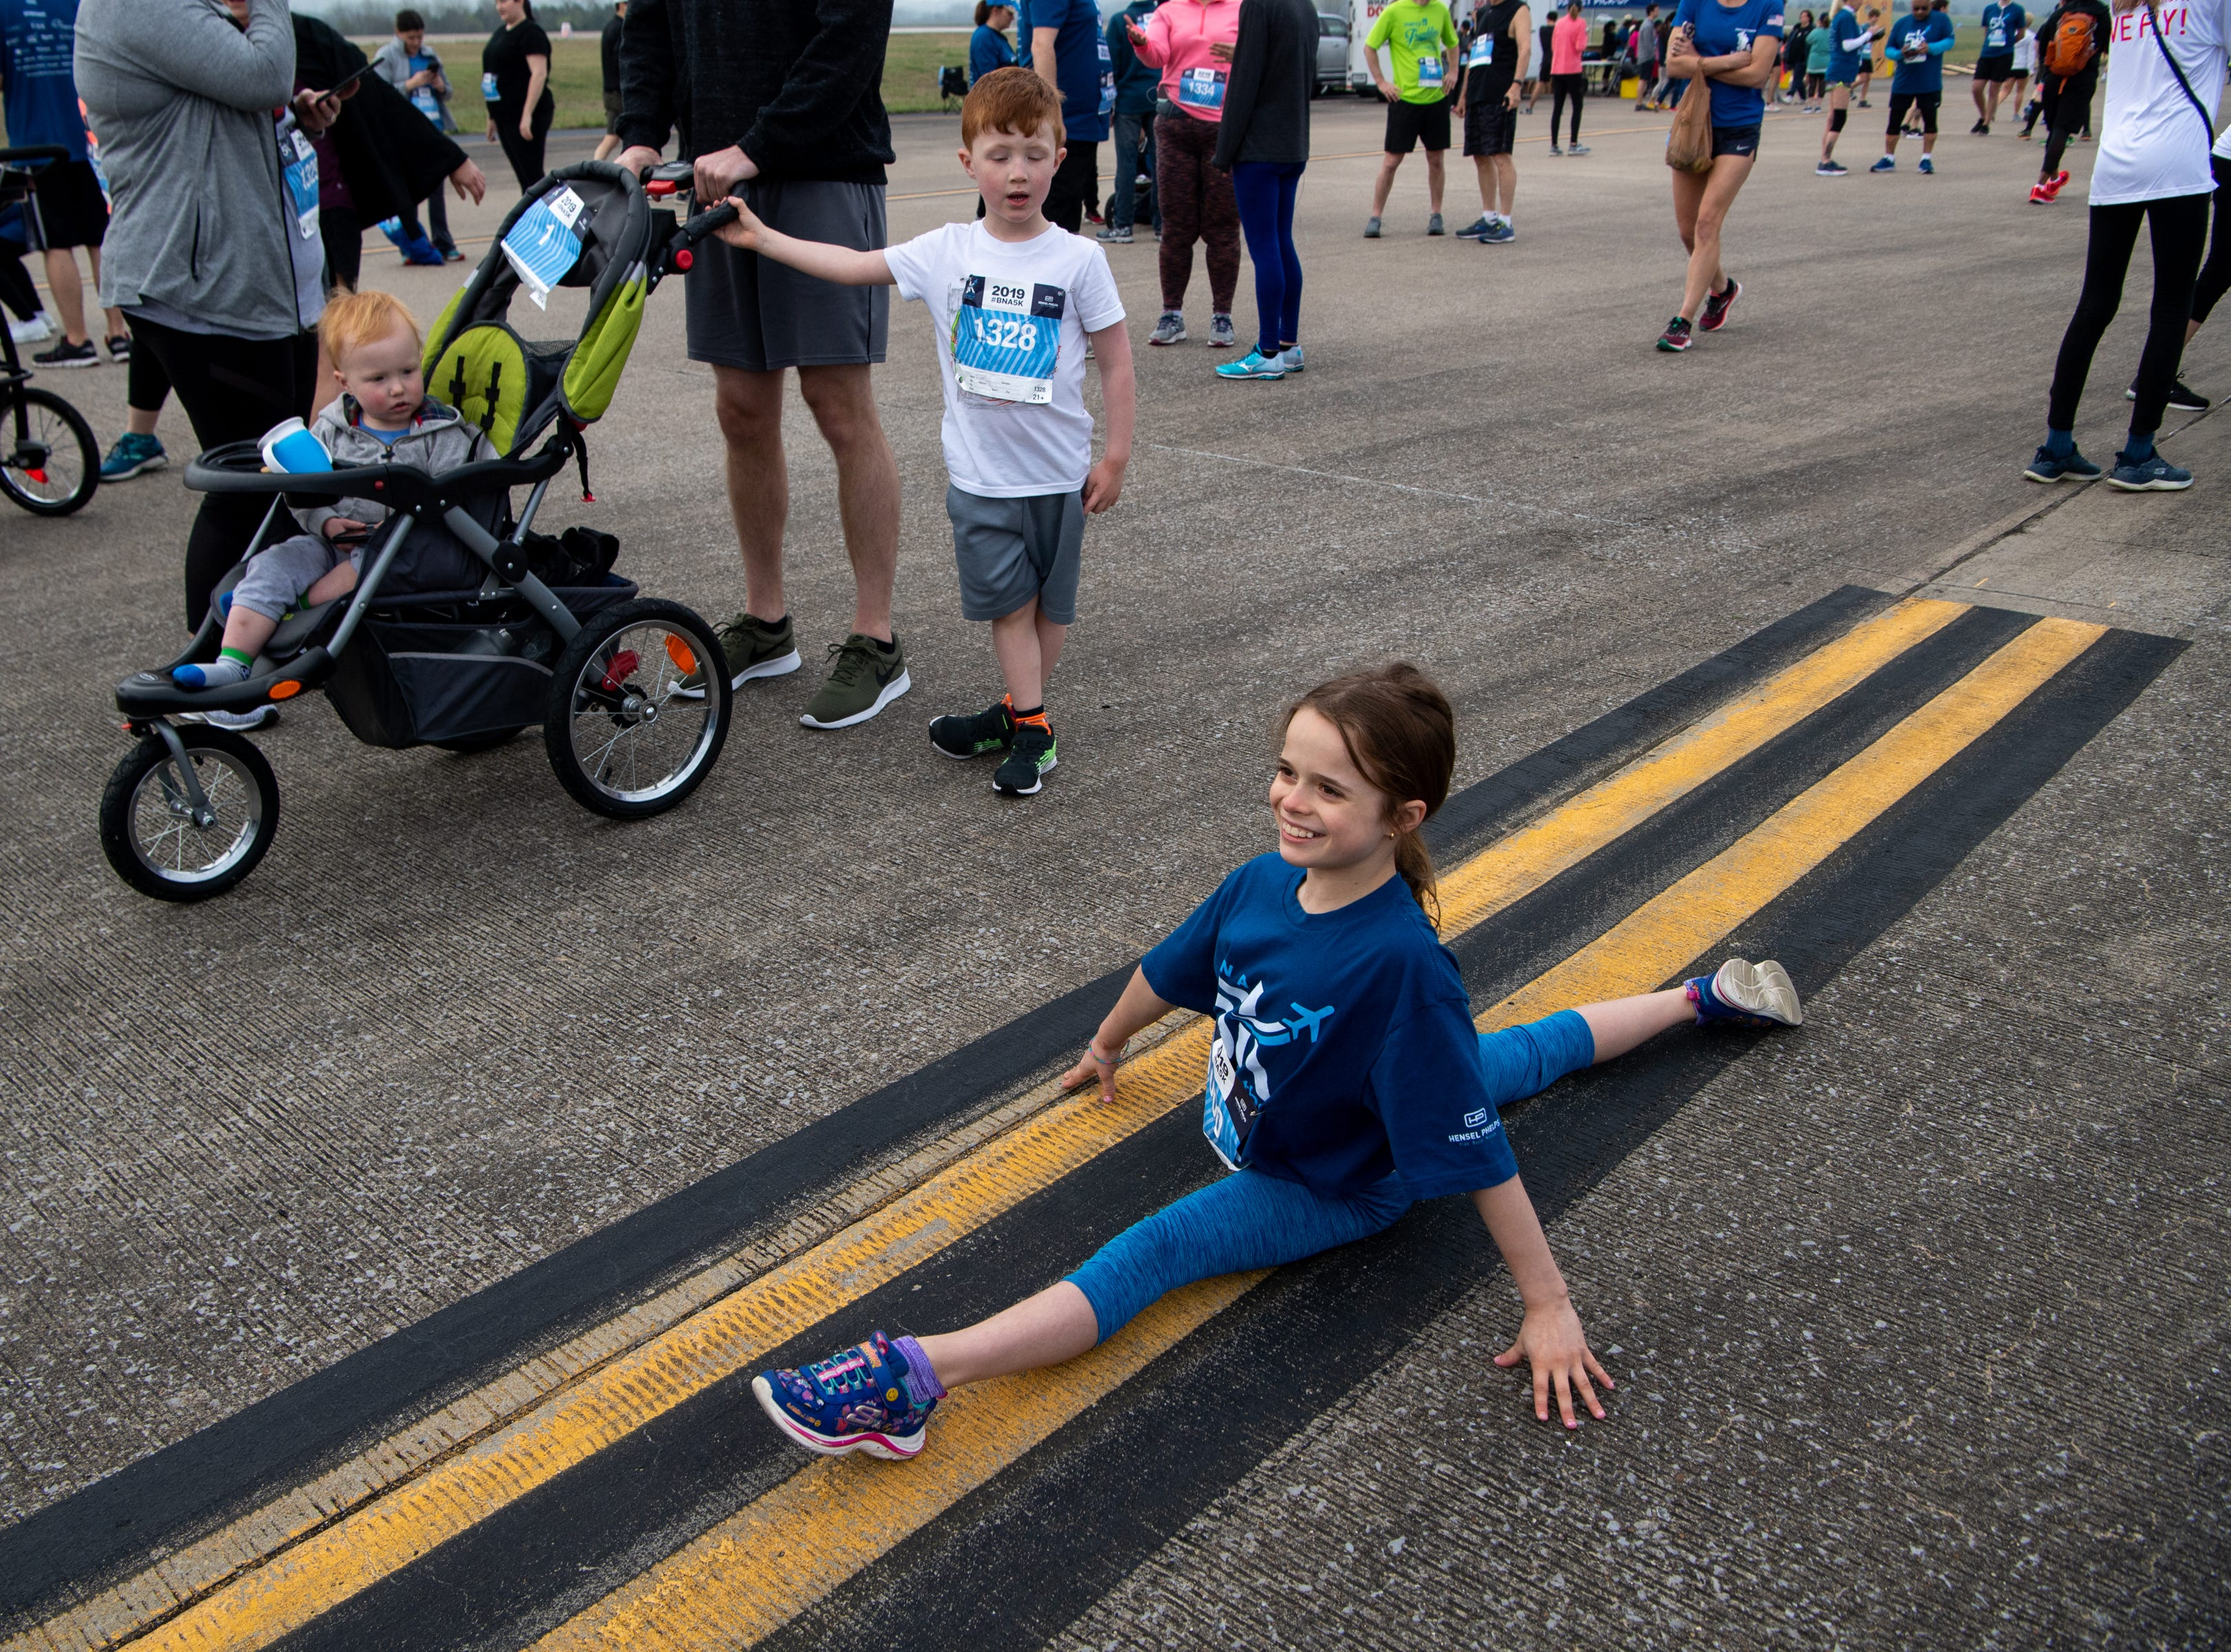 Ella Snyder, 9, stretches before the BNA 5K on the Runway at Nashville International Airport on Runway 2R/20L Saturday, April 6, 2019, in Nashville, Tenn.